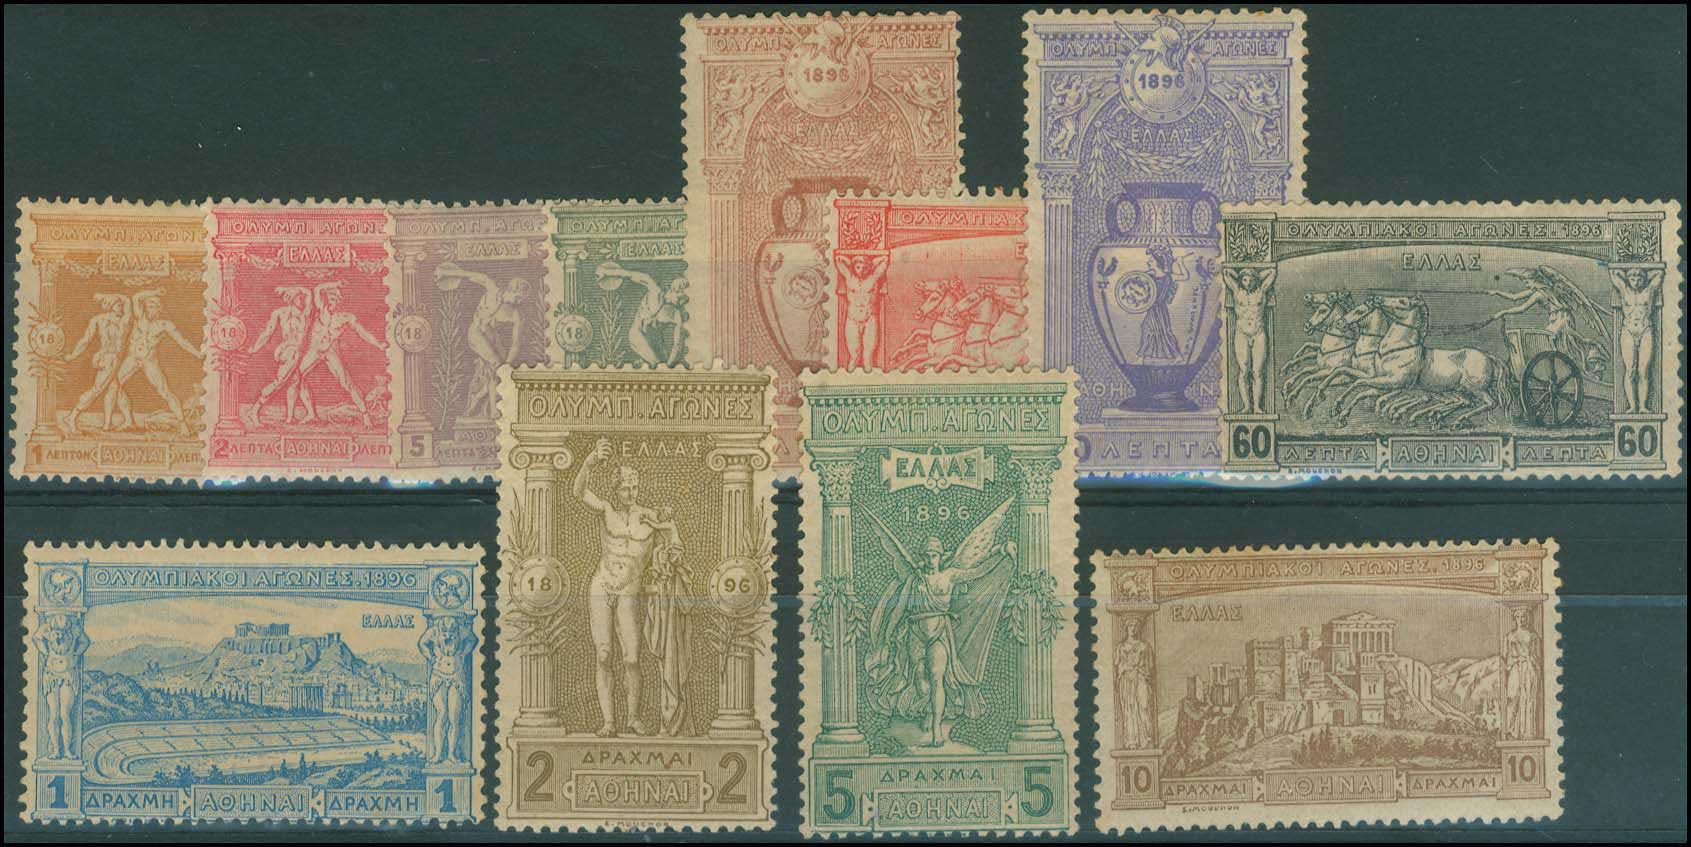 Lot 289 - -  1896 FIRST OLYMPIC GAMES 1896 first olympic games -  A. Karamitsos Public Auction № 670 General Sale